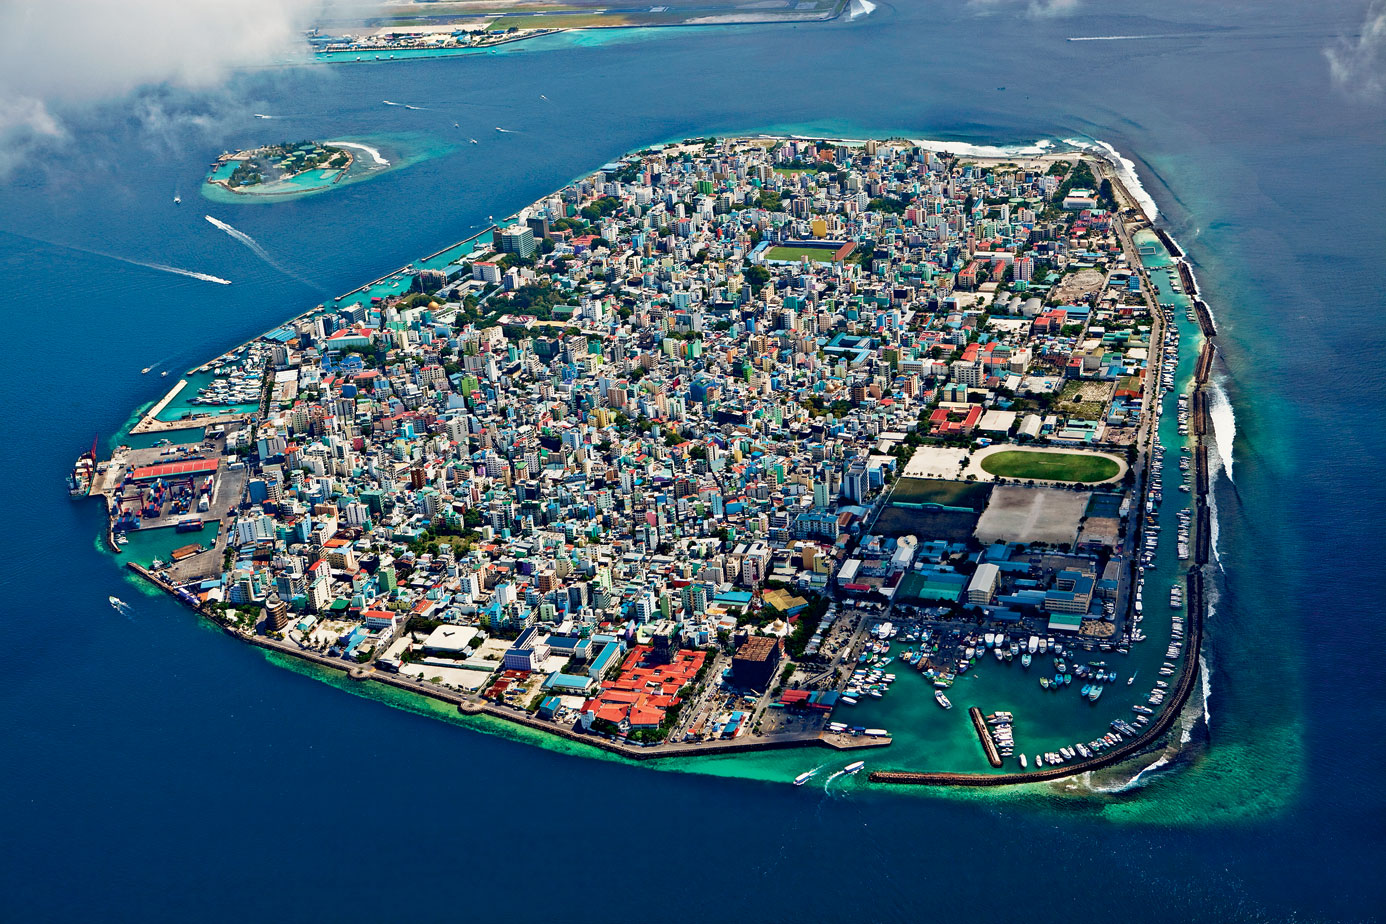 MALDIVES - SINGAPORE